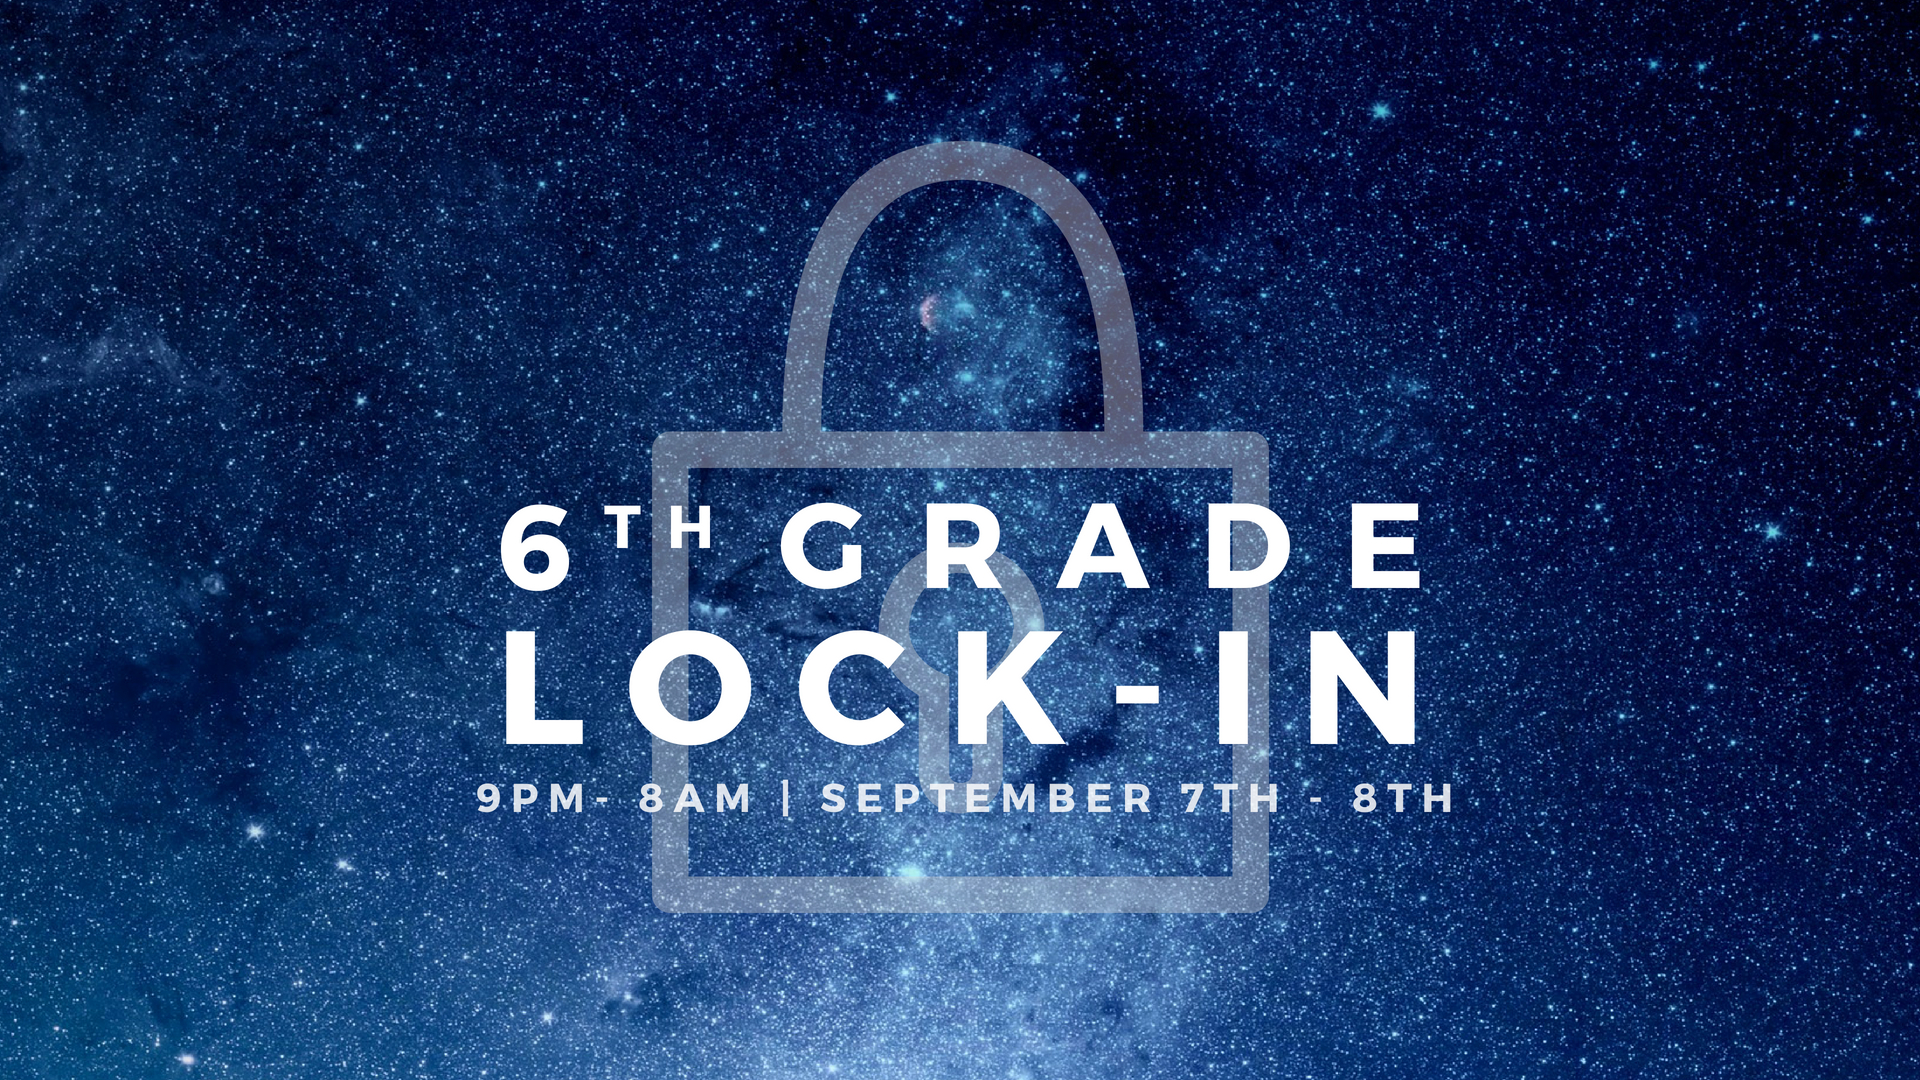 If you're in 6th grade, we have an event just for you! Come hangout at Cornerstone on Friday, September 7th-8th from 9:00pm to 8:00am for a night of crazy fun games, tasty snacks, and some sleep (if you want)! Feel free to invite all of your 6th grade friends! This event costs $10 per person.To register for this event  CLICK HERE !